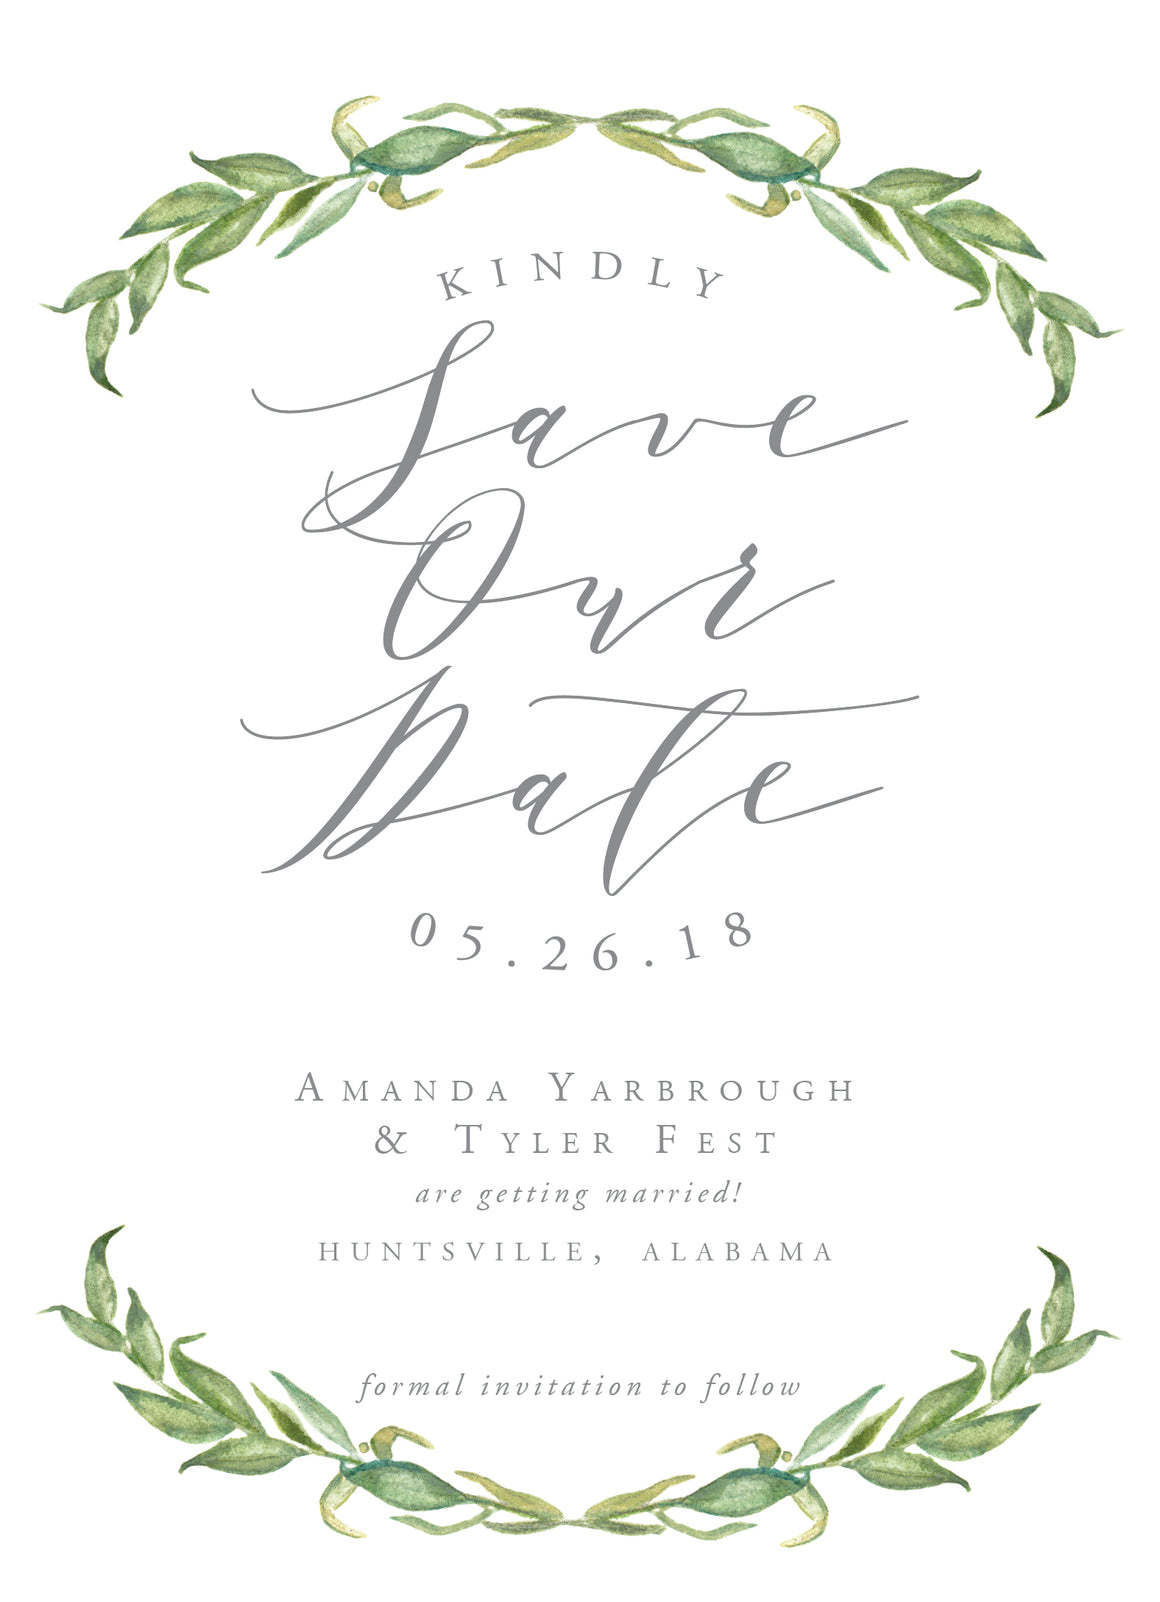 Amanda Save the Date